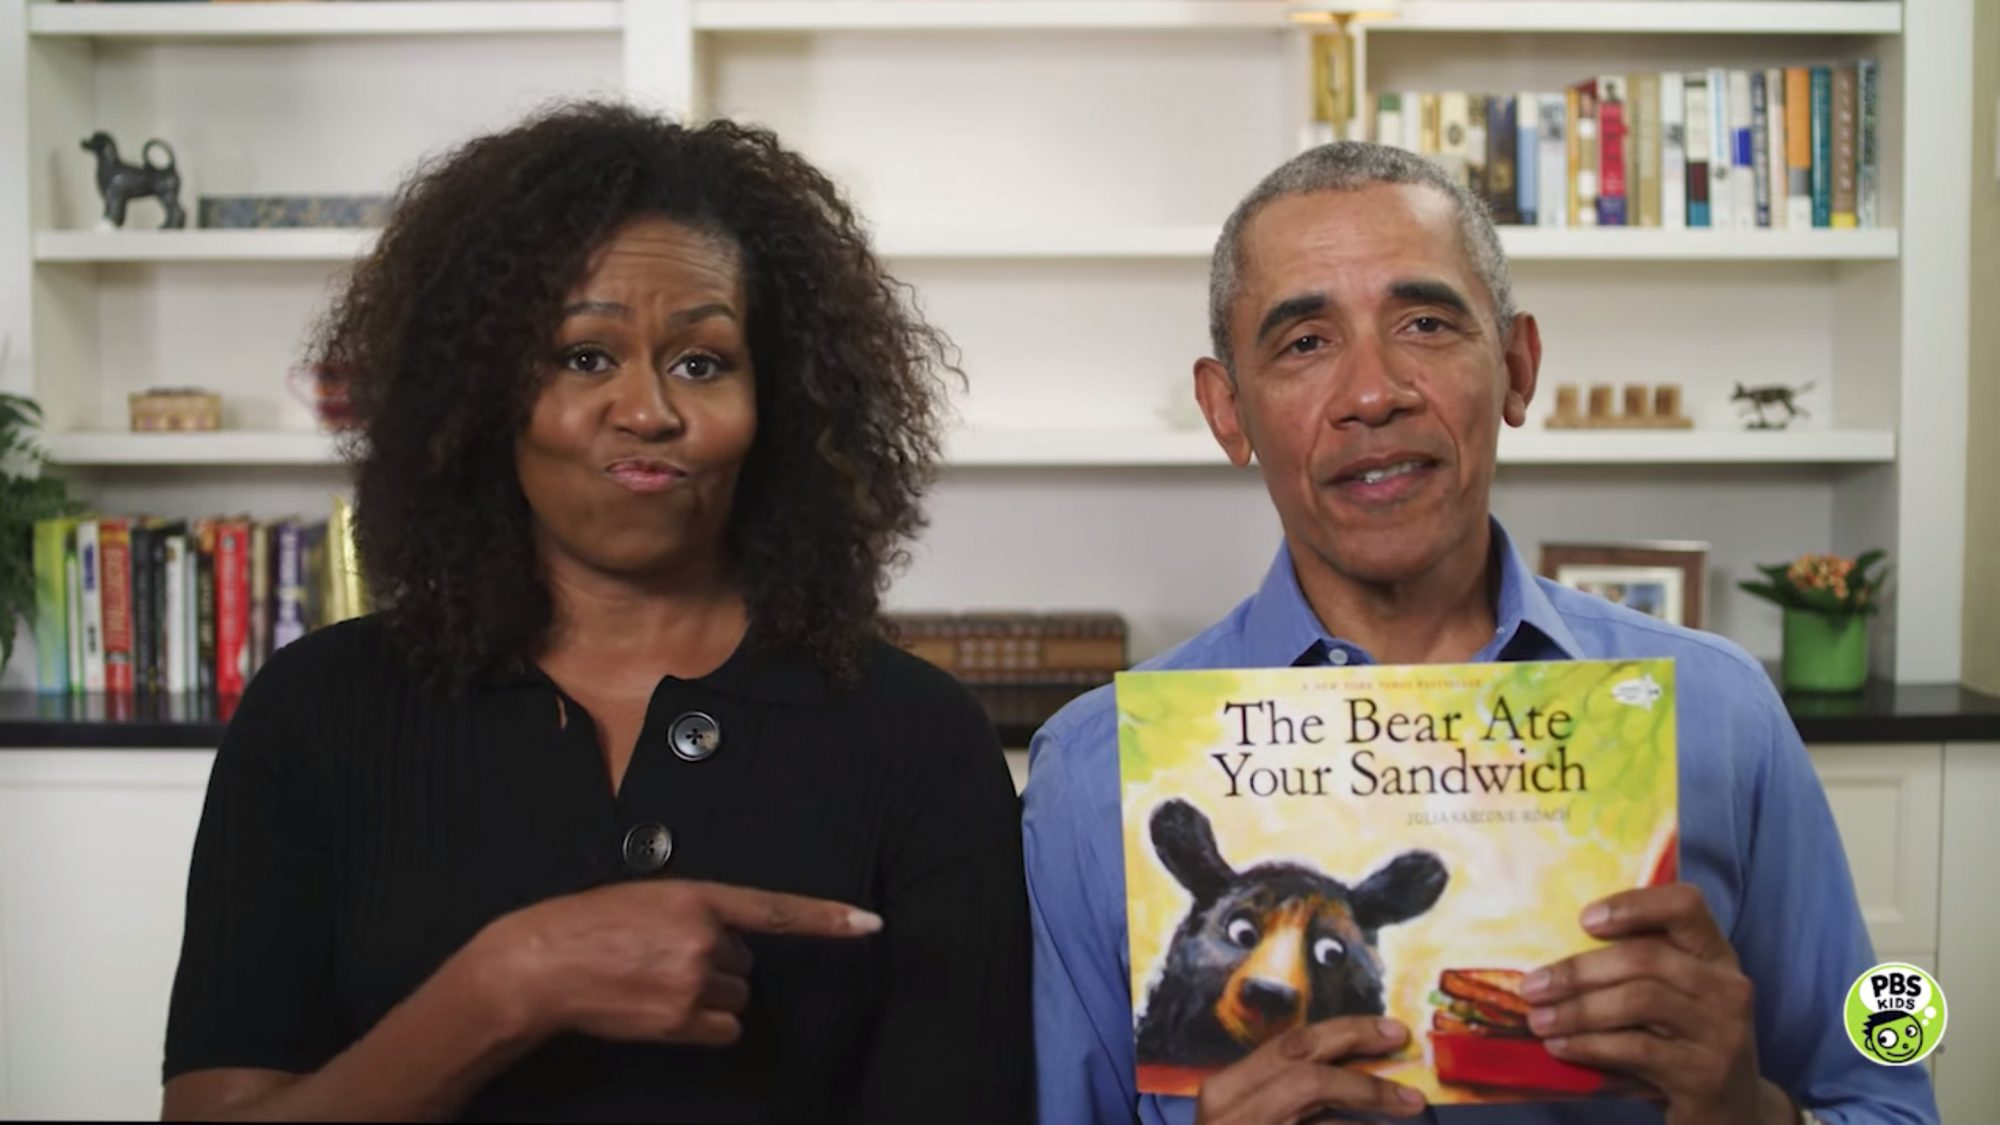 READ ALONG with MICHELLE & BARACK OBAMA